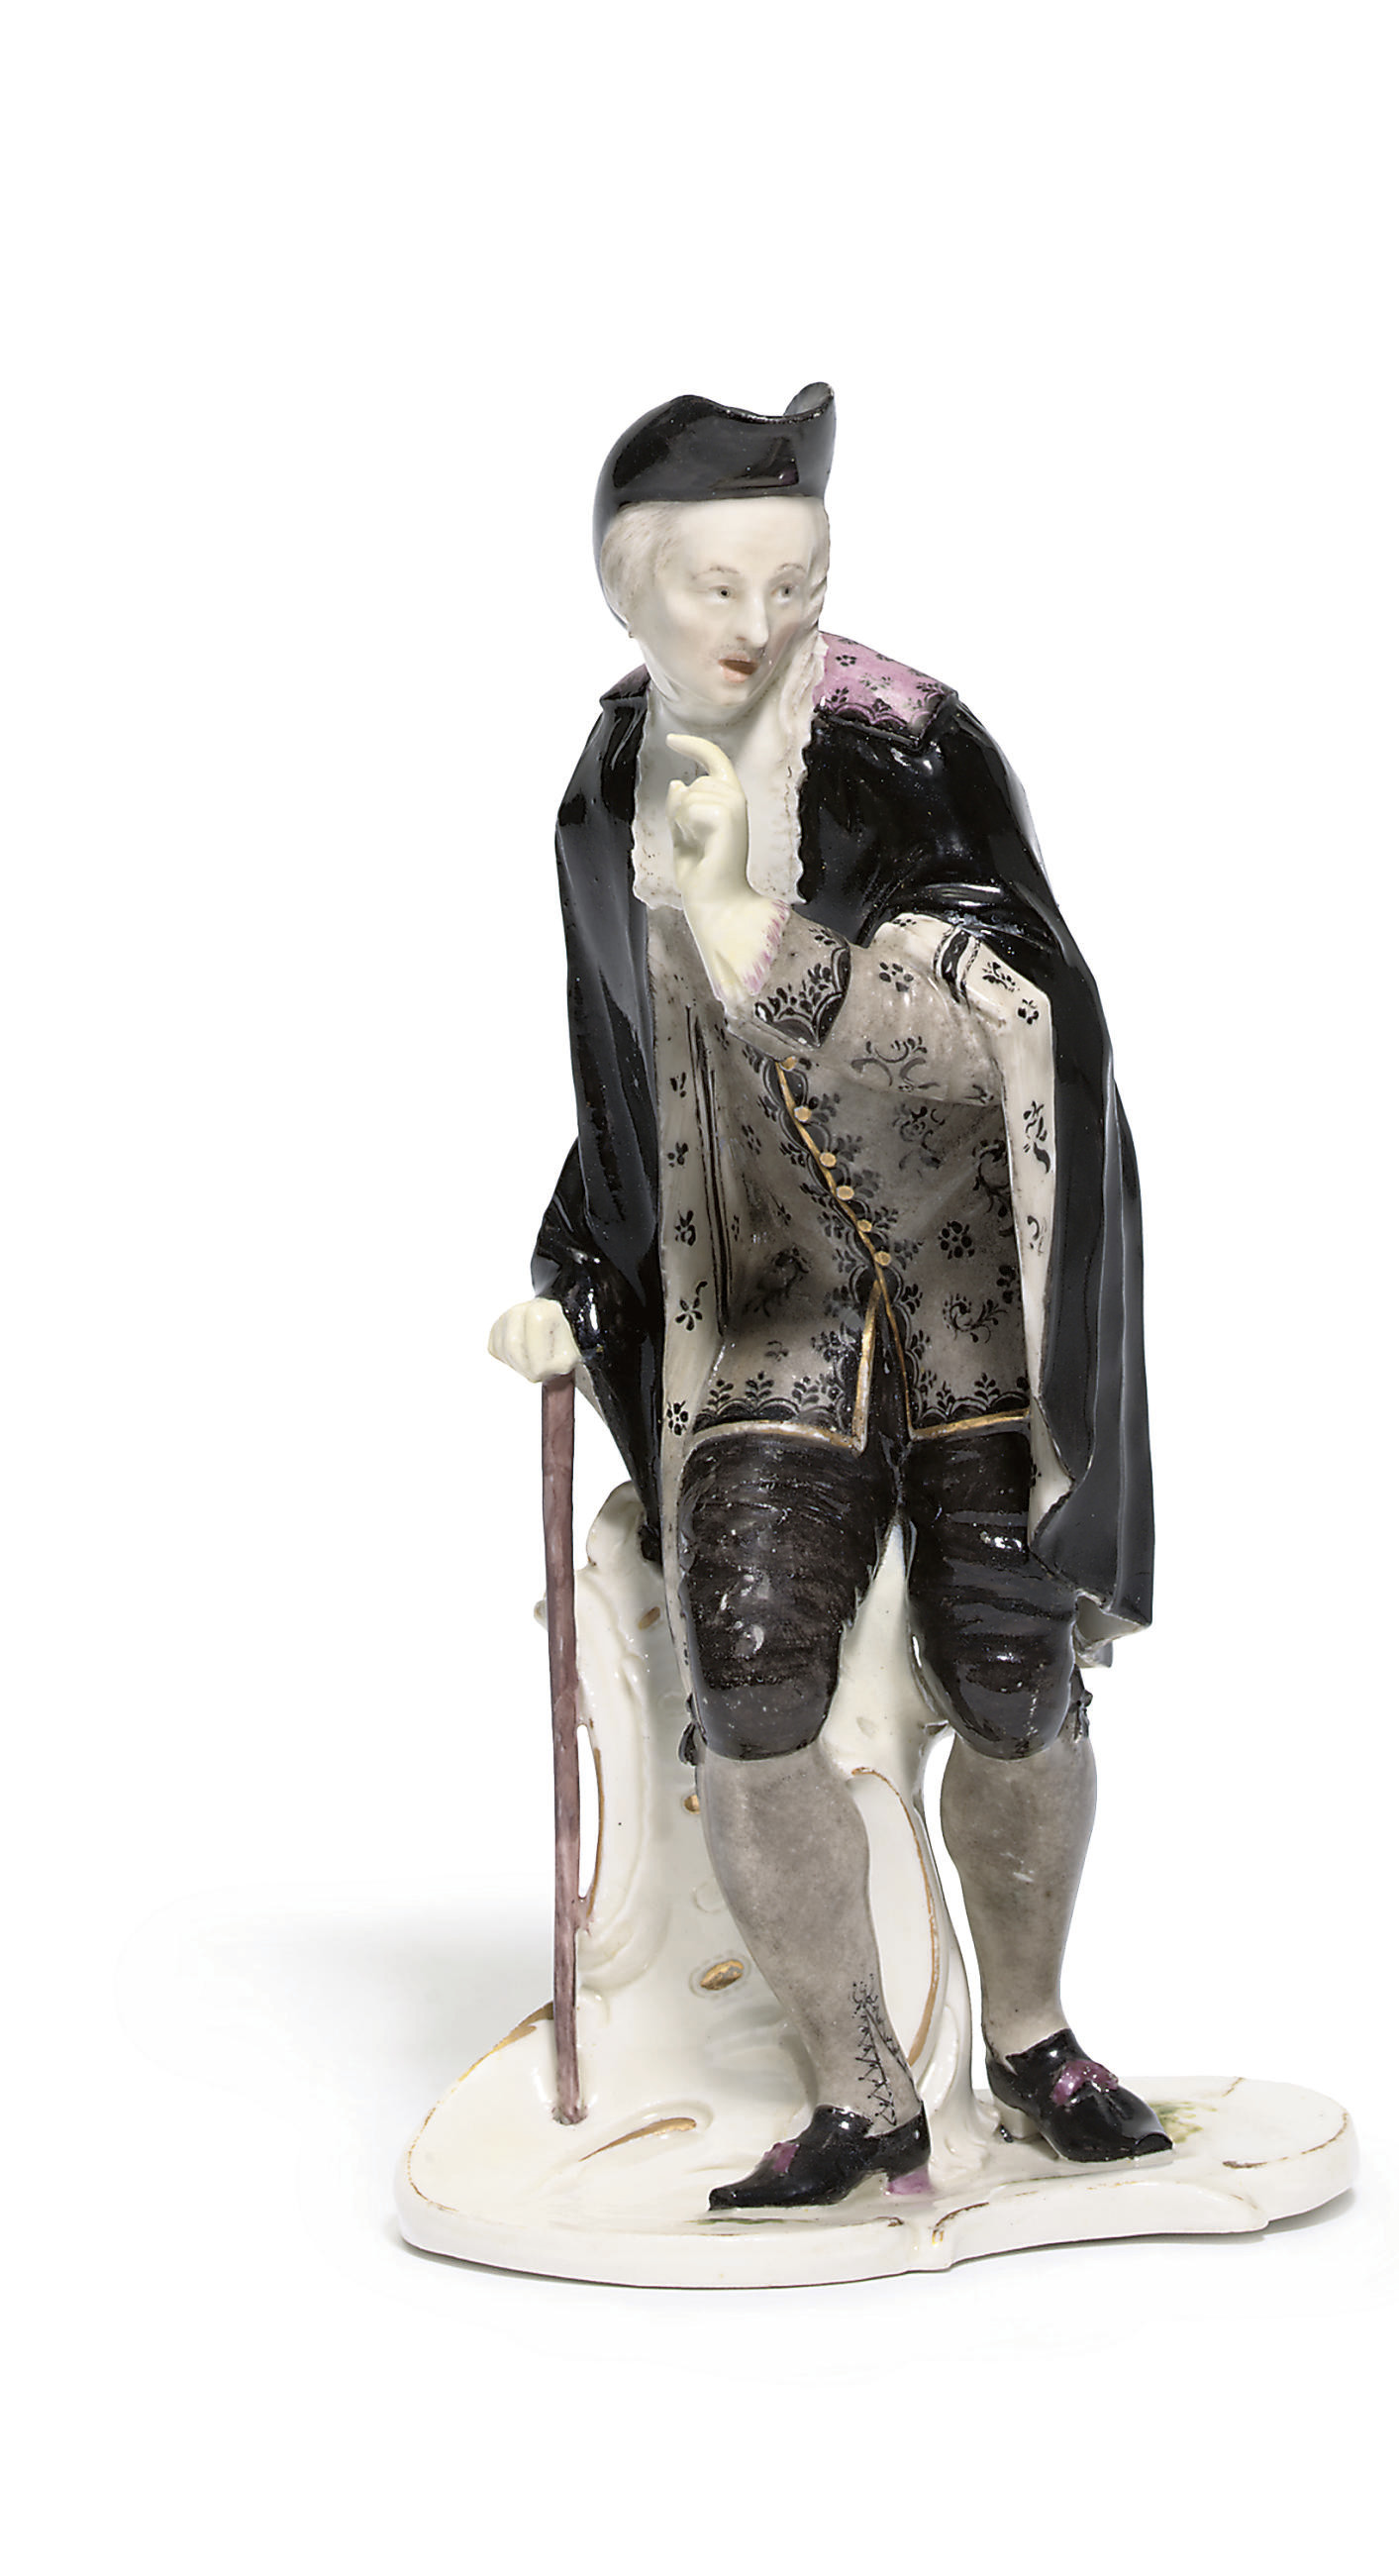 A NYMPHENBURG FIGURE OF L'ABBE OR ANSELMO FROM THE COMMEDIA DELL'ARTE SERIES